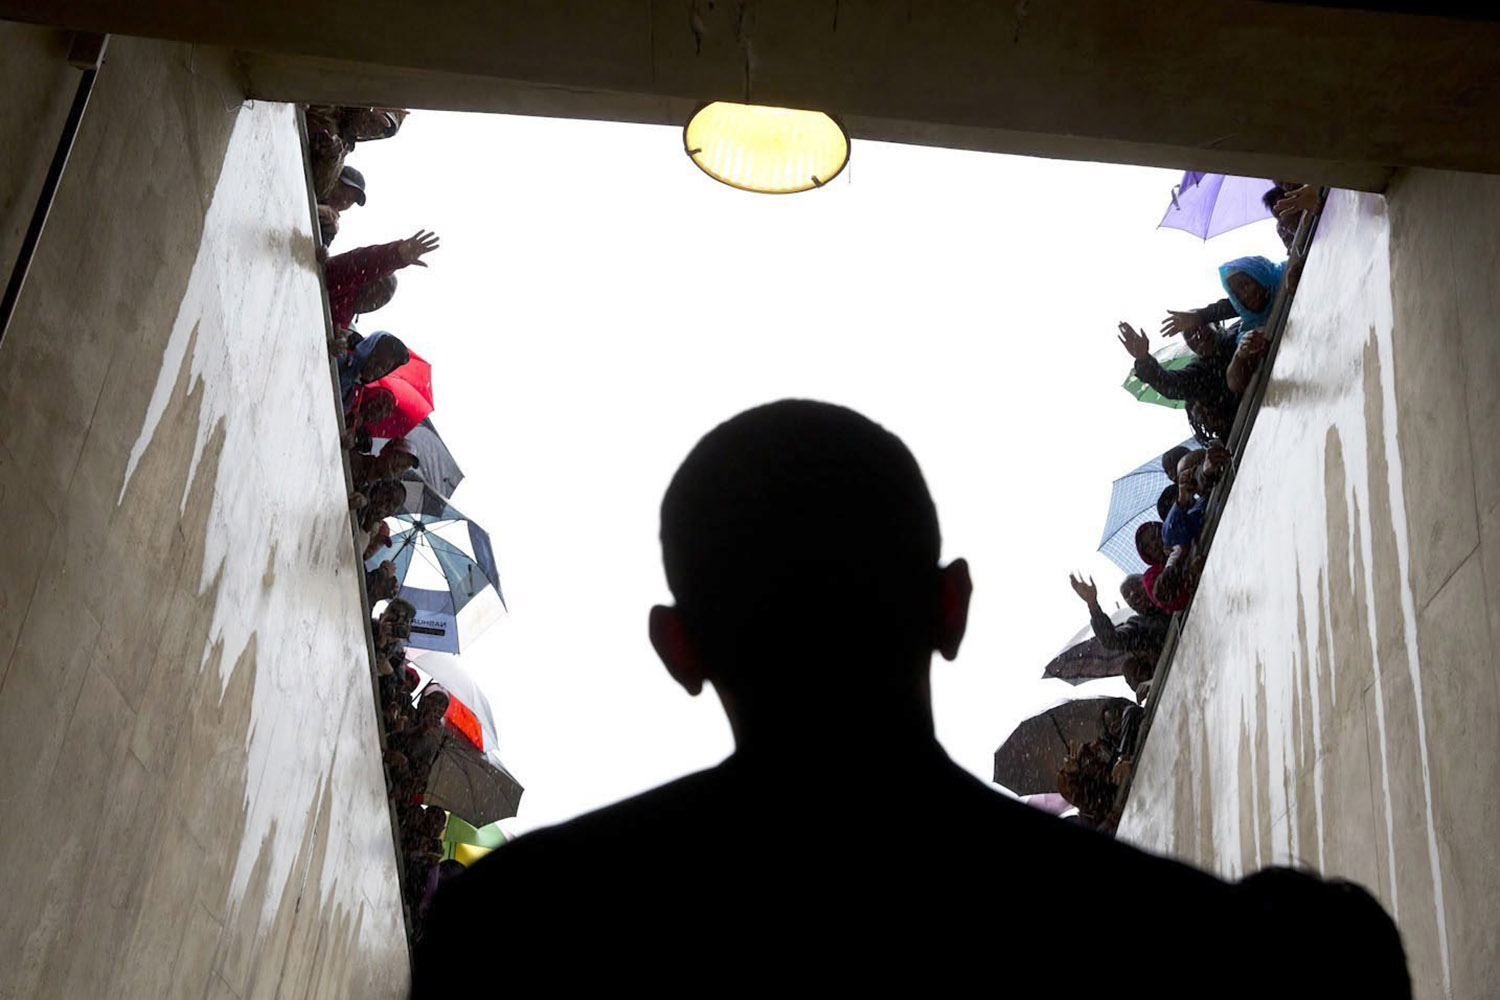 Dec. 10, 2013. A photo provided by the White House on Dec. 12, 2013 shows South Africans cheering as U.S. President Obama walks through a tunnel at the soccer stadium before taking the stage to speak at the memorial service for late South African president Nelson Mandela at FNB Stadium in Johannesburg, South Africa.